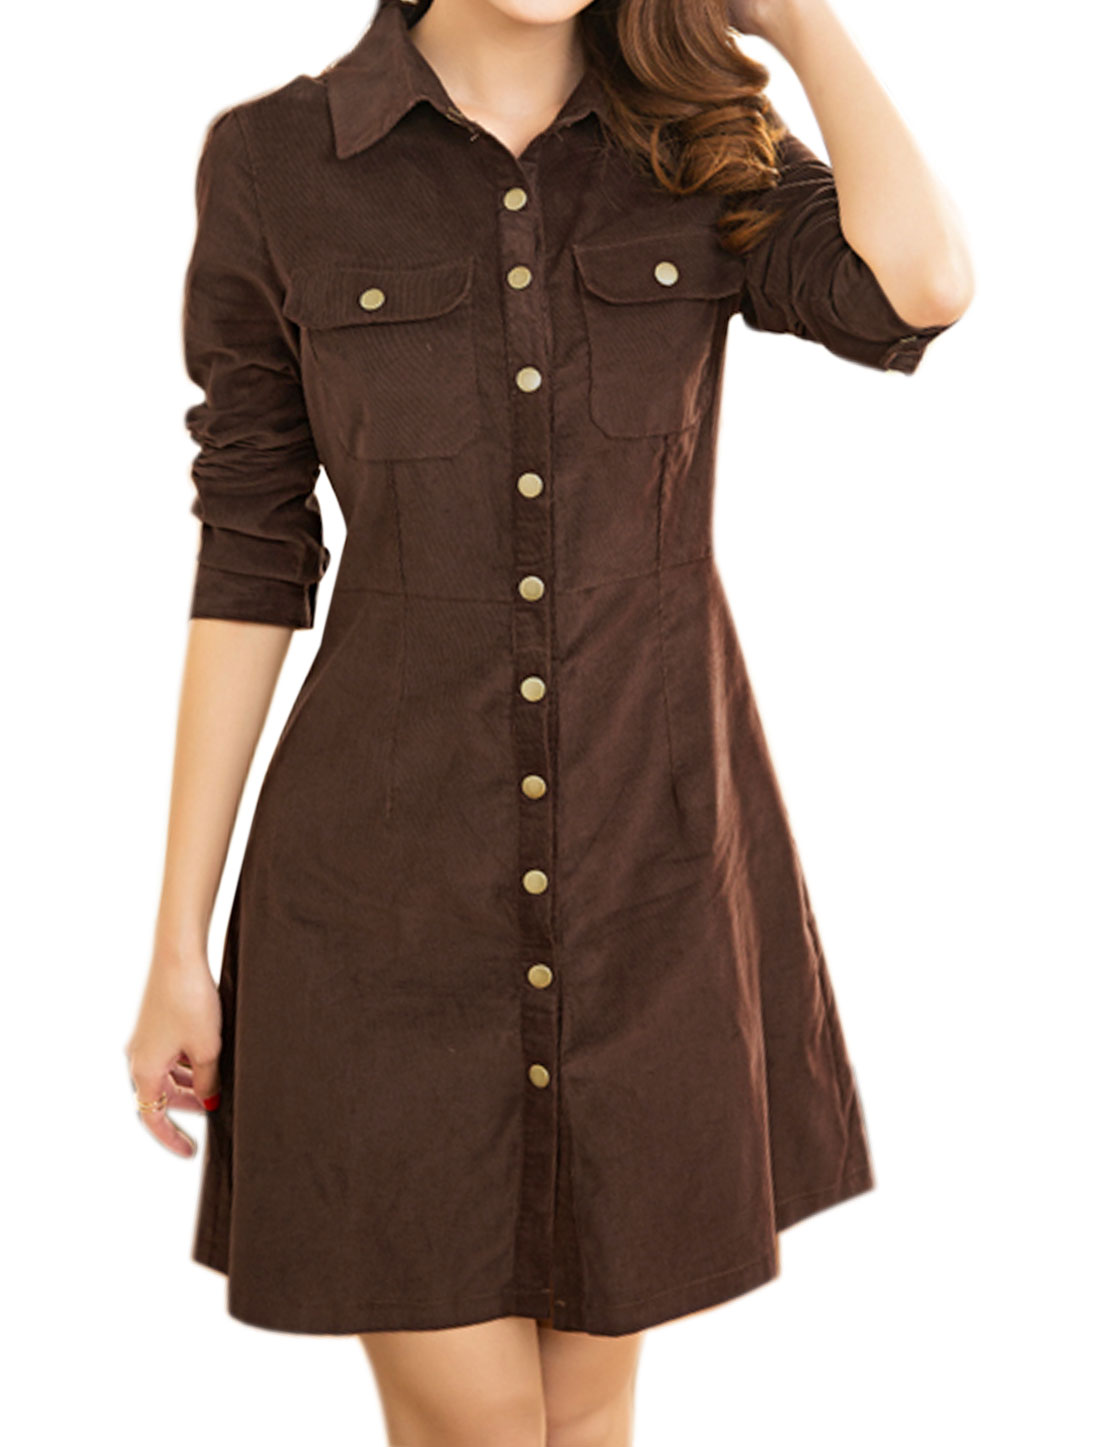 Women Snap Button Flap Pockets Slim Fit Corduroy Shirt Dress Brown M